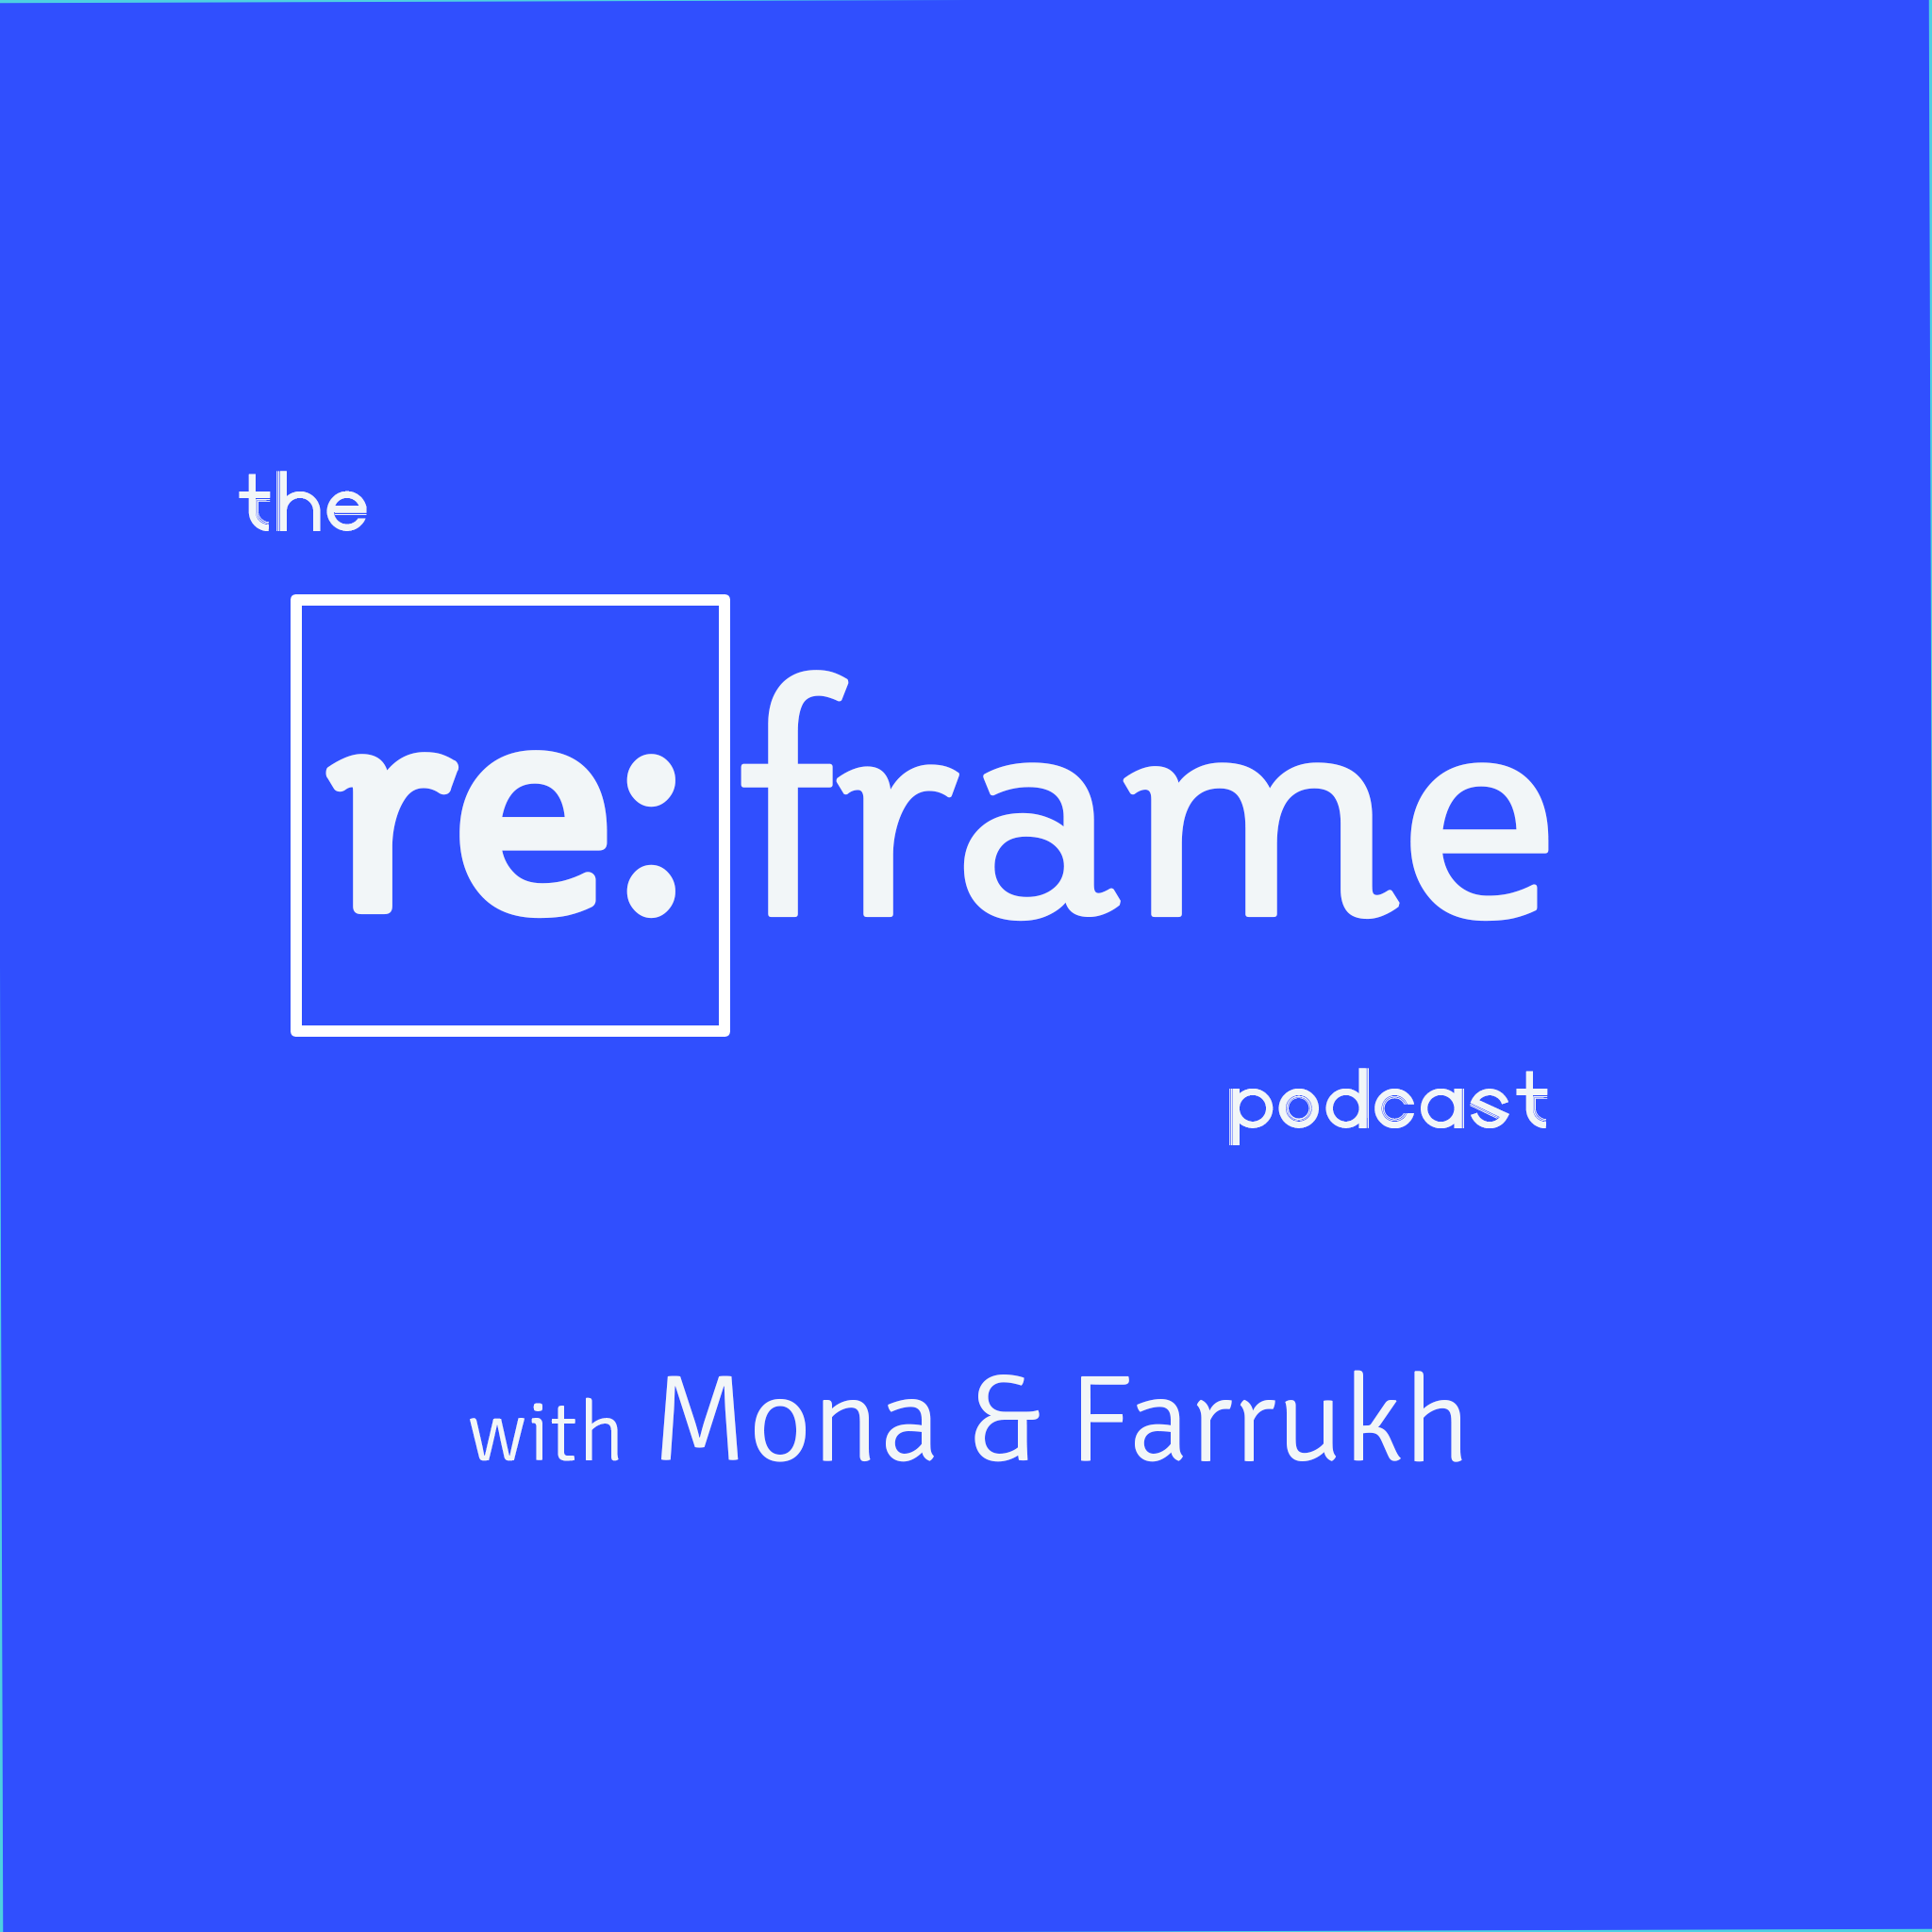 reframe with mona and farrukh show art